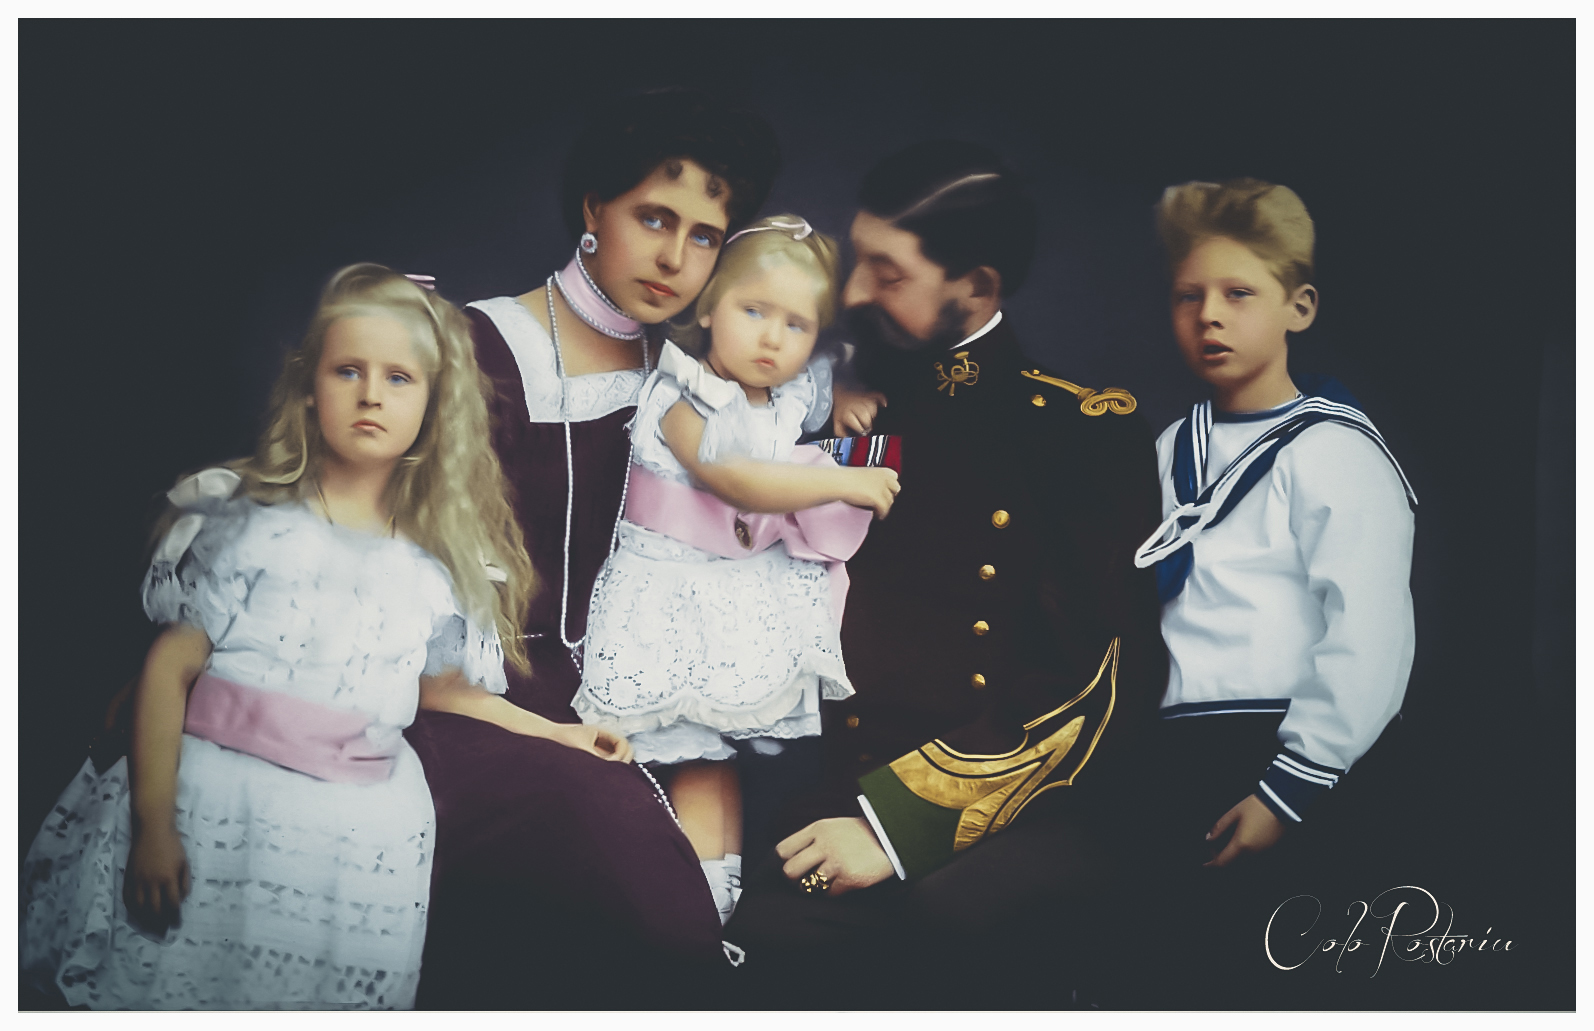 the-romanian-royal-family-casa-regala-rege-regina-queen-king-of-romania-prince-princess-ww1-ww2-world-war-uk-london-new-york.jpg